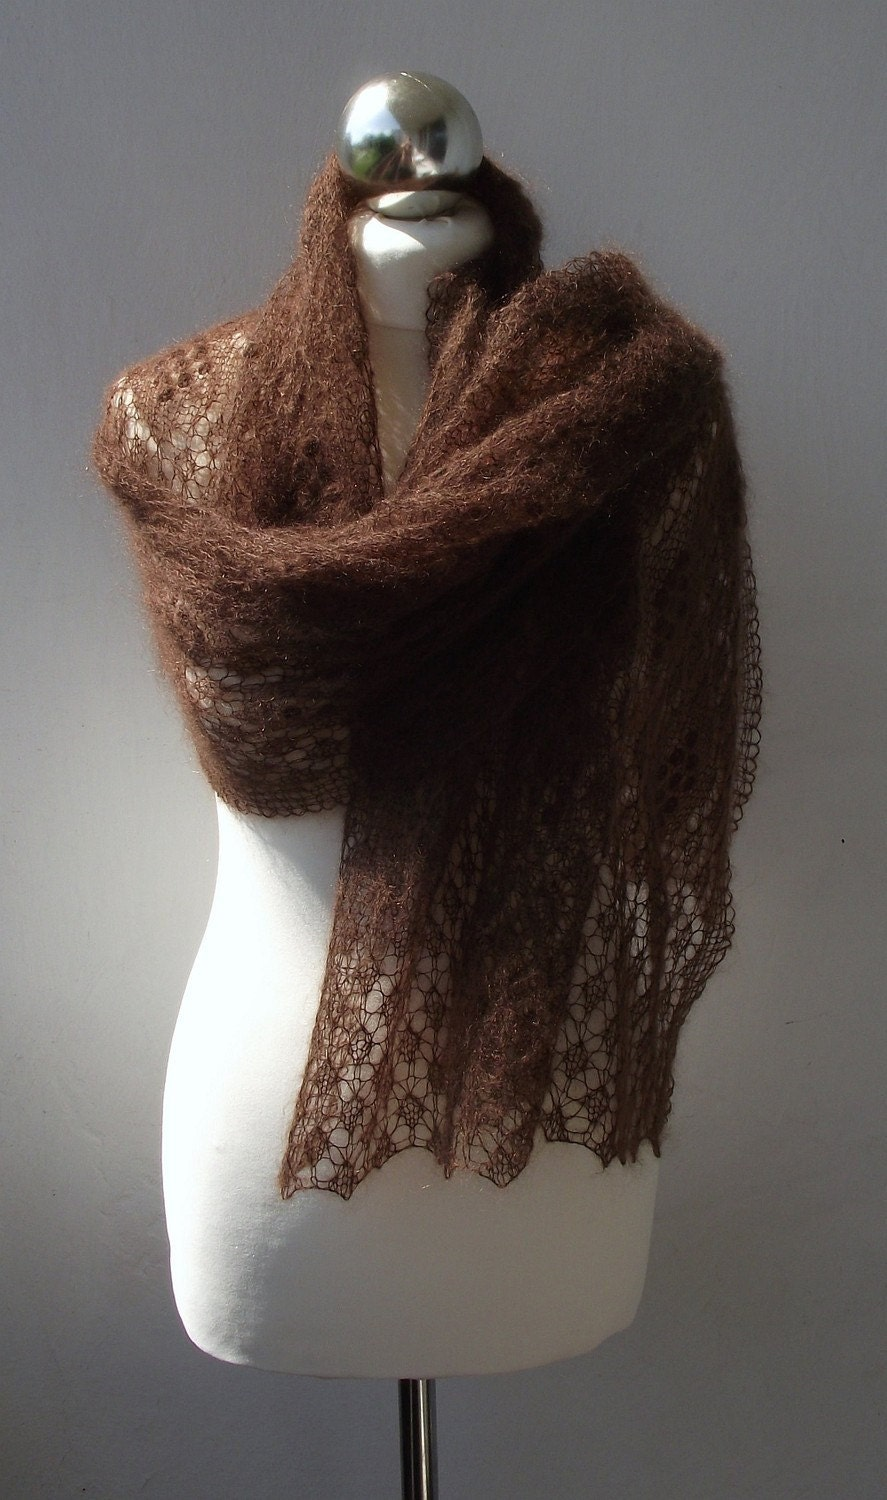 Chocolate Mousse hand knitted lace shawl